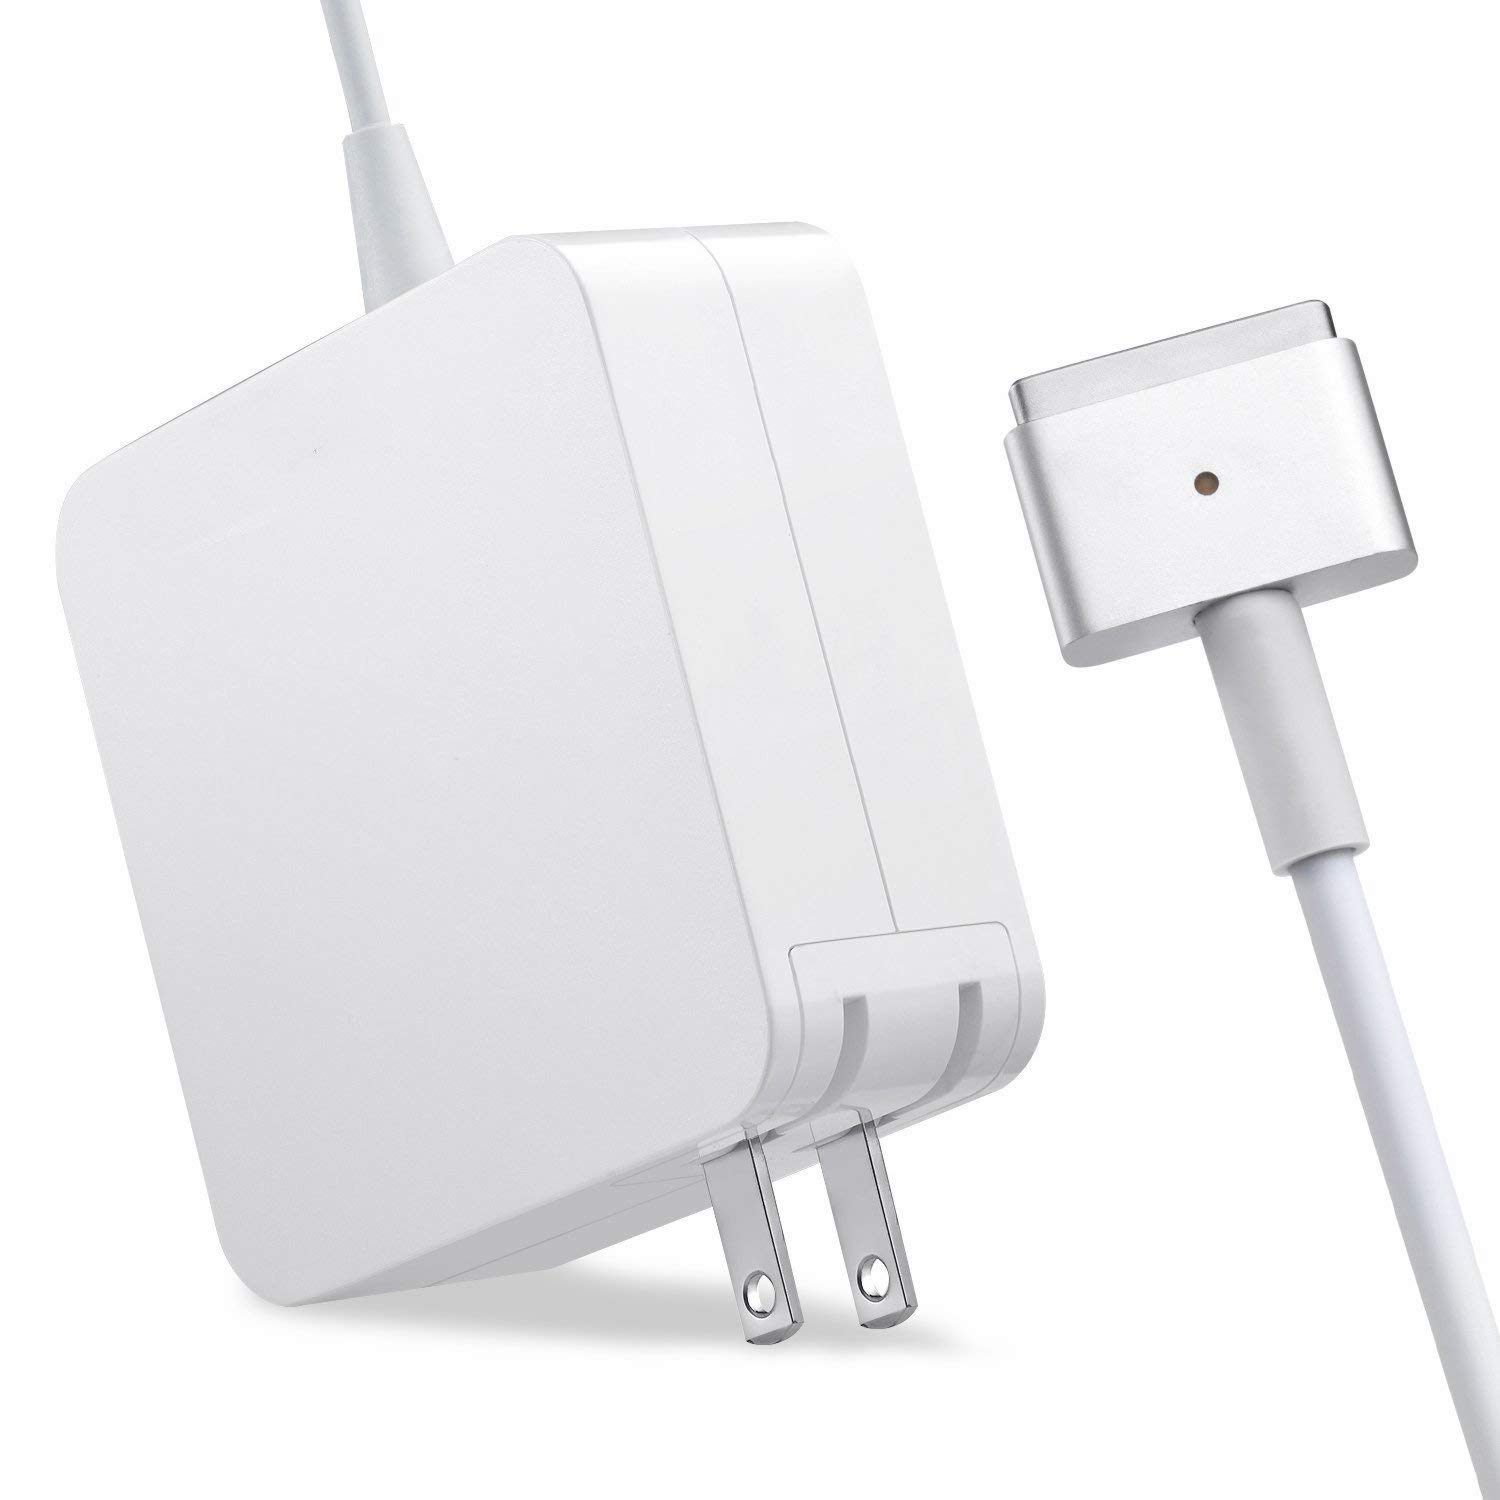 AC 45W Magsafe2 T-Tip Power Adapter Charger for MacBook Air 11/13 inch (MacBook Air Released After Mid 2012)  US plug